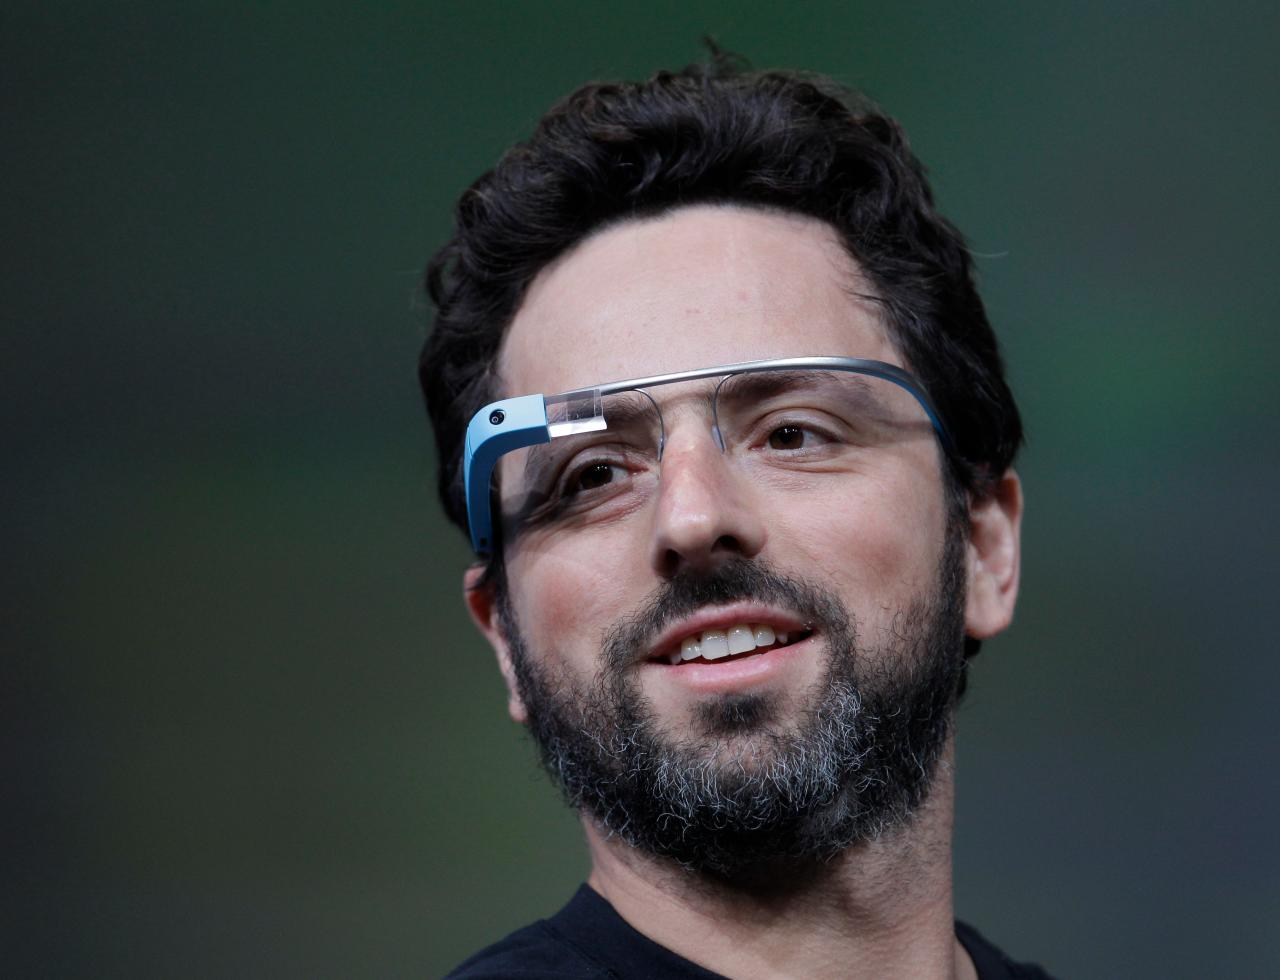 Sergey Brinn with his Google Glass.